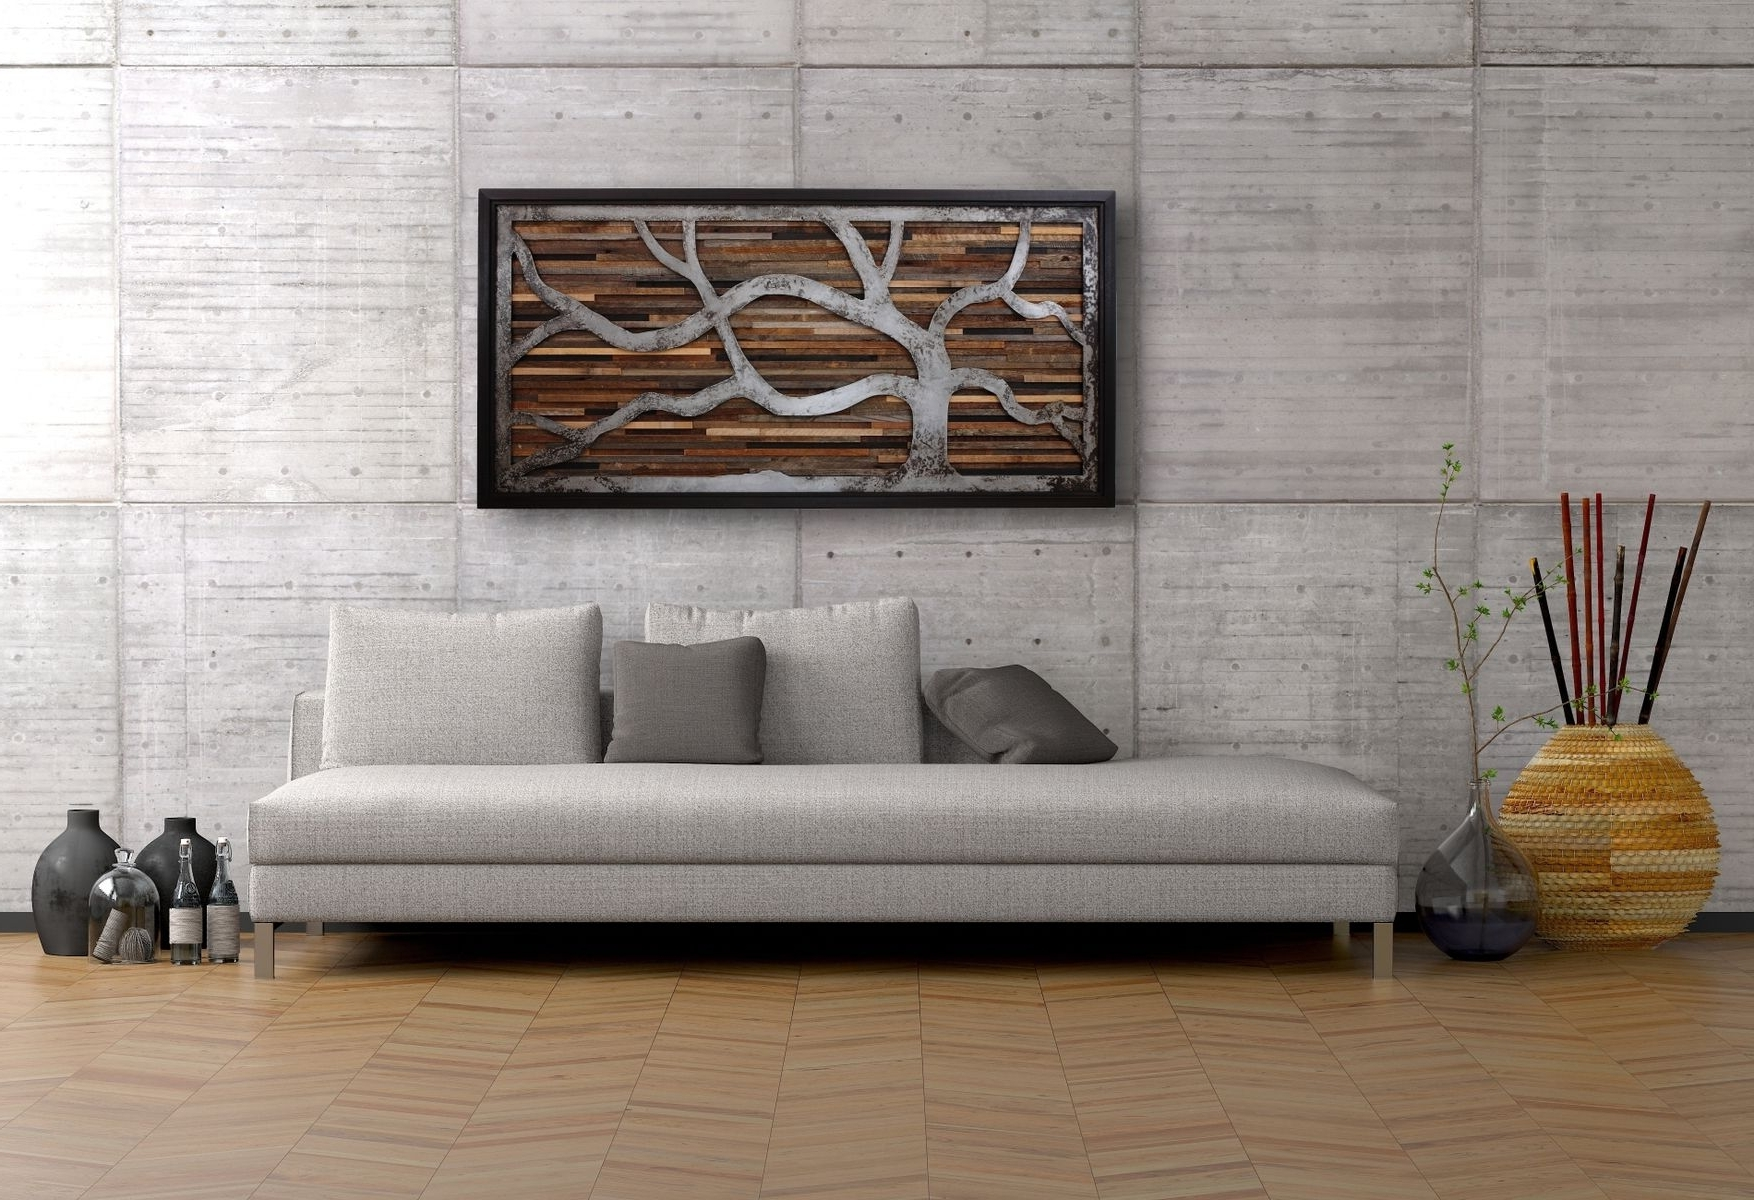 Current Handmade Reclaimed Wood Wall Art Made Of Old Barnwood And Rustic With Reclaimed Wood Wall Art (View 2 of 15)